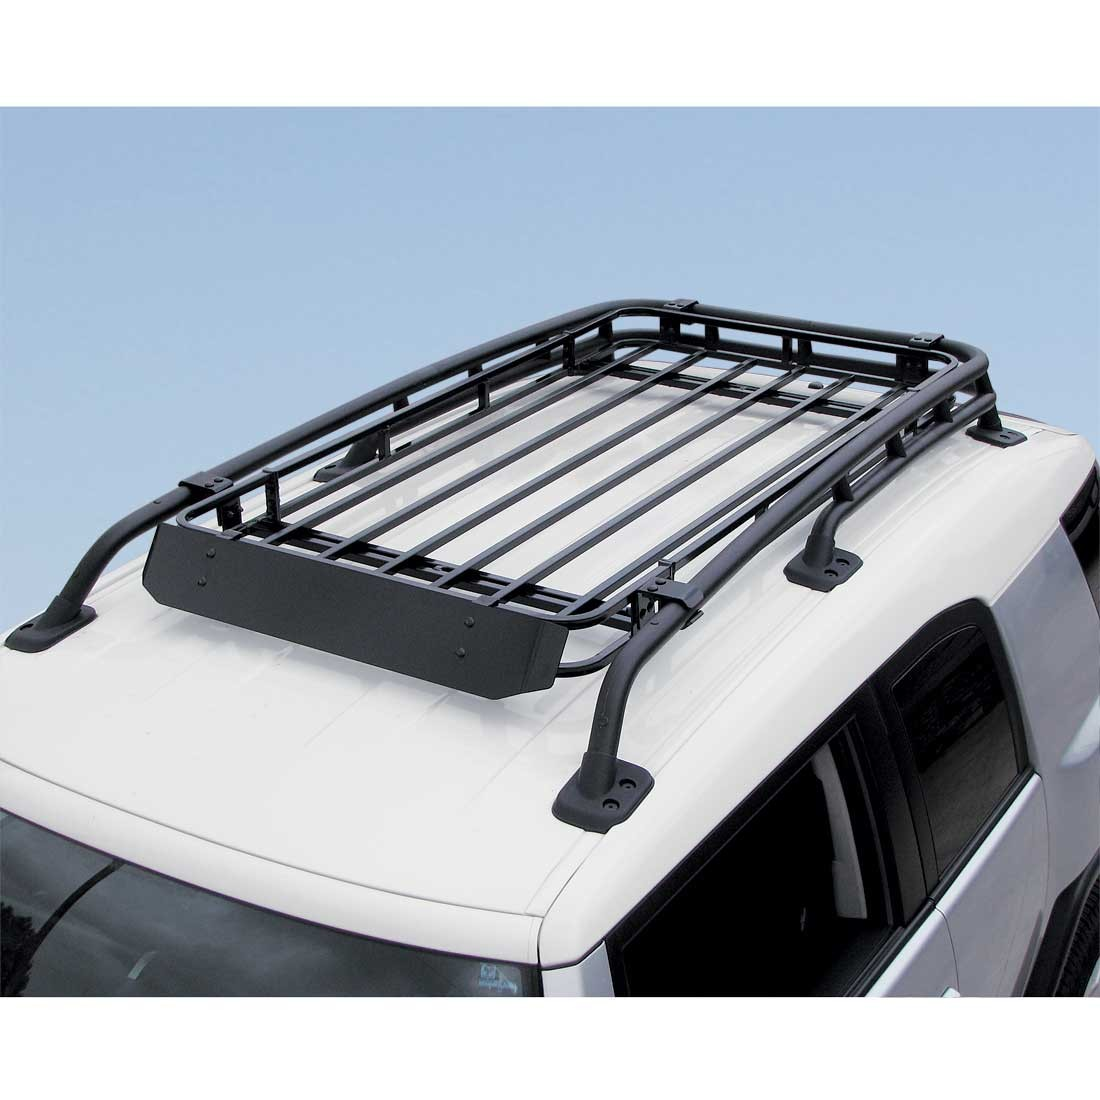 Wilderness Racks FJ Adventure Roof Rack XL